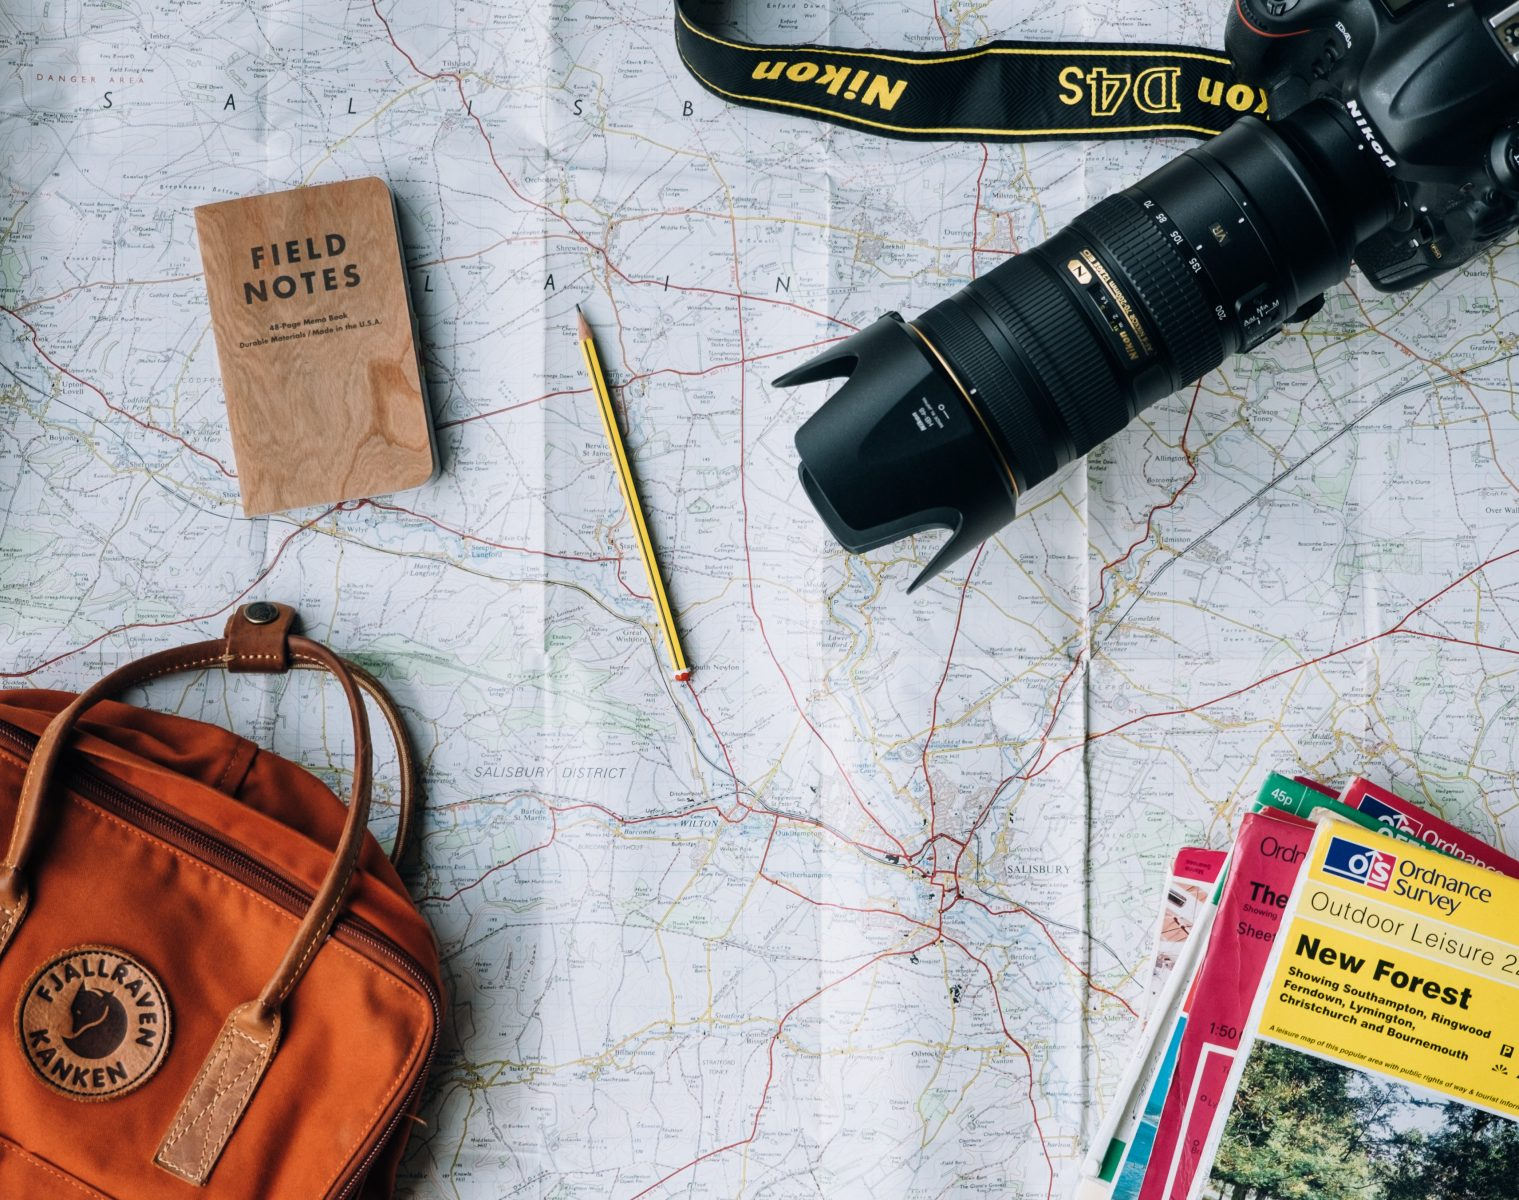 Camera, notebooks, rucksack and pen on a road map